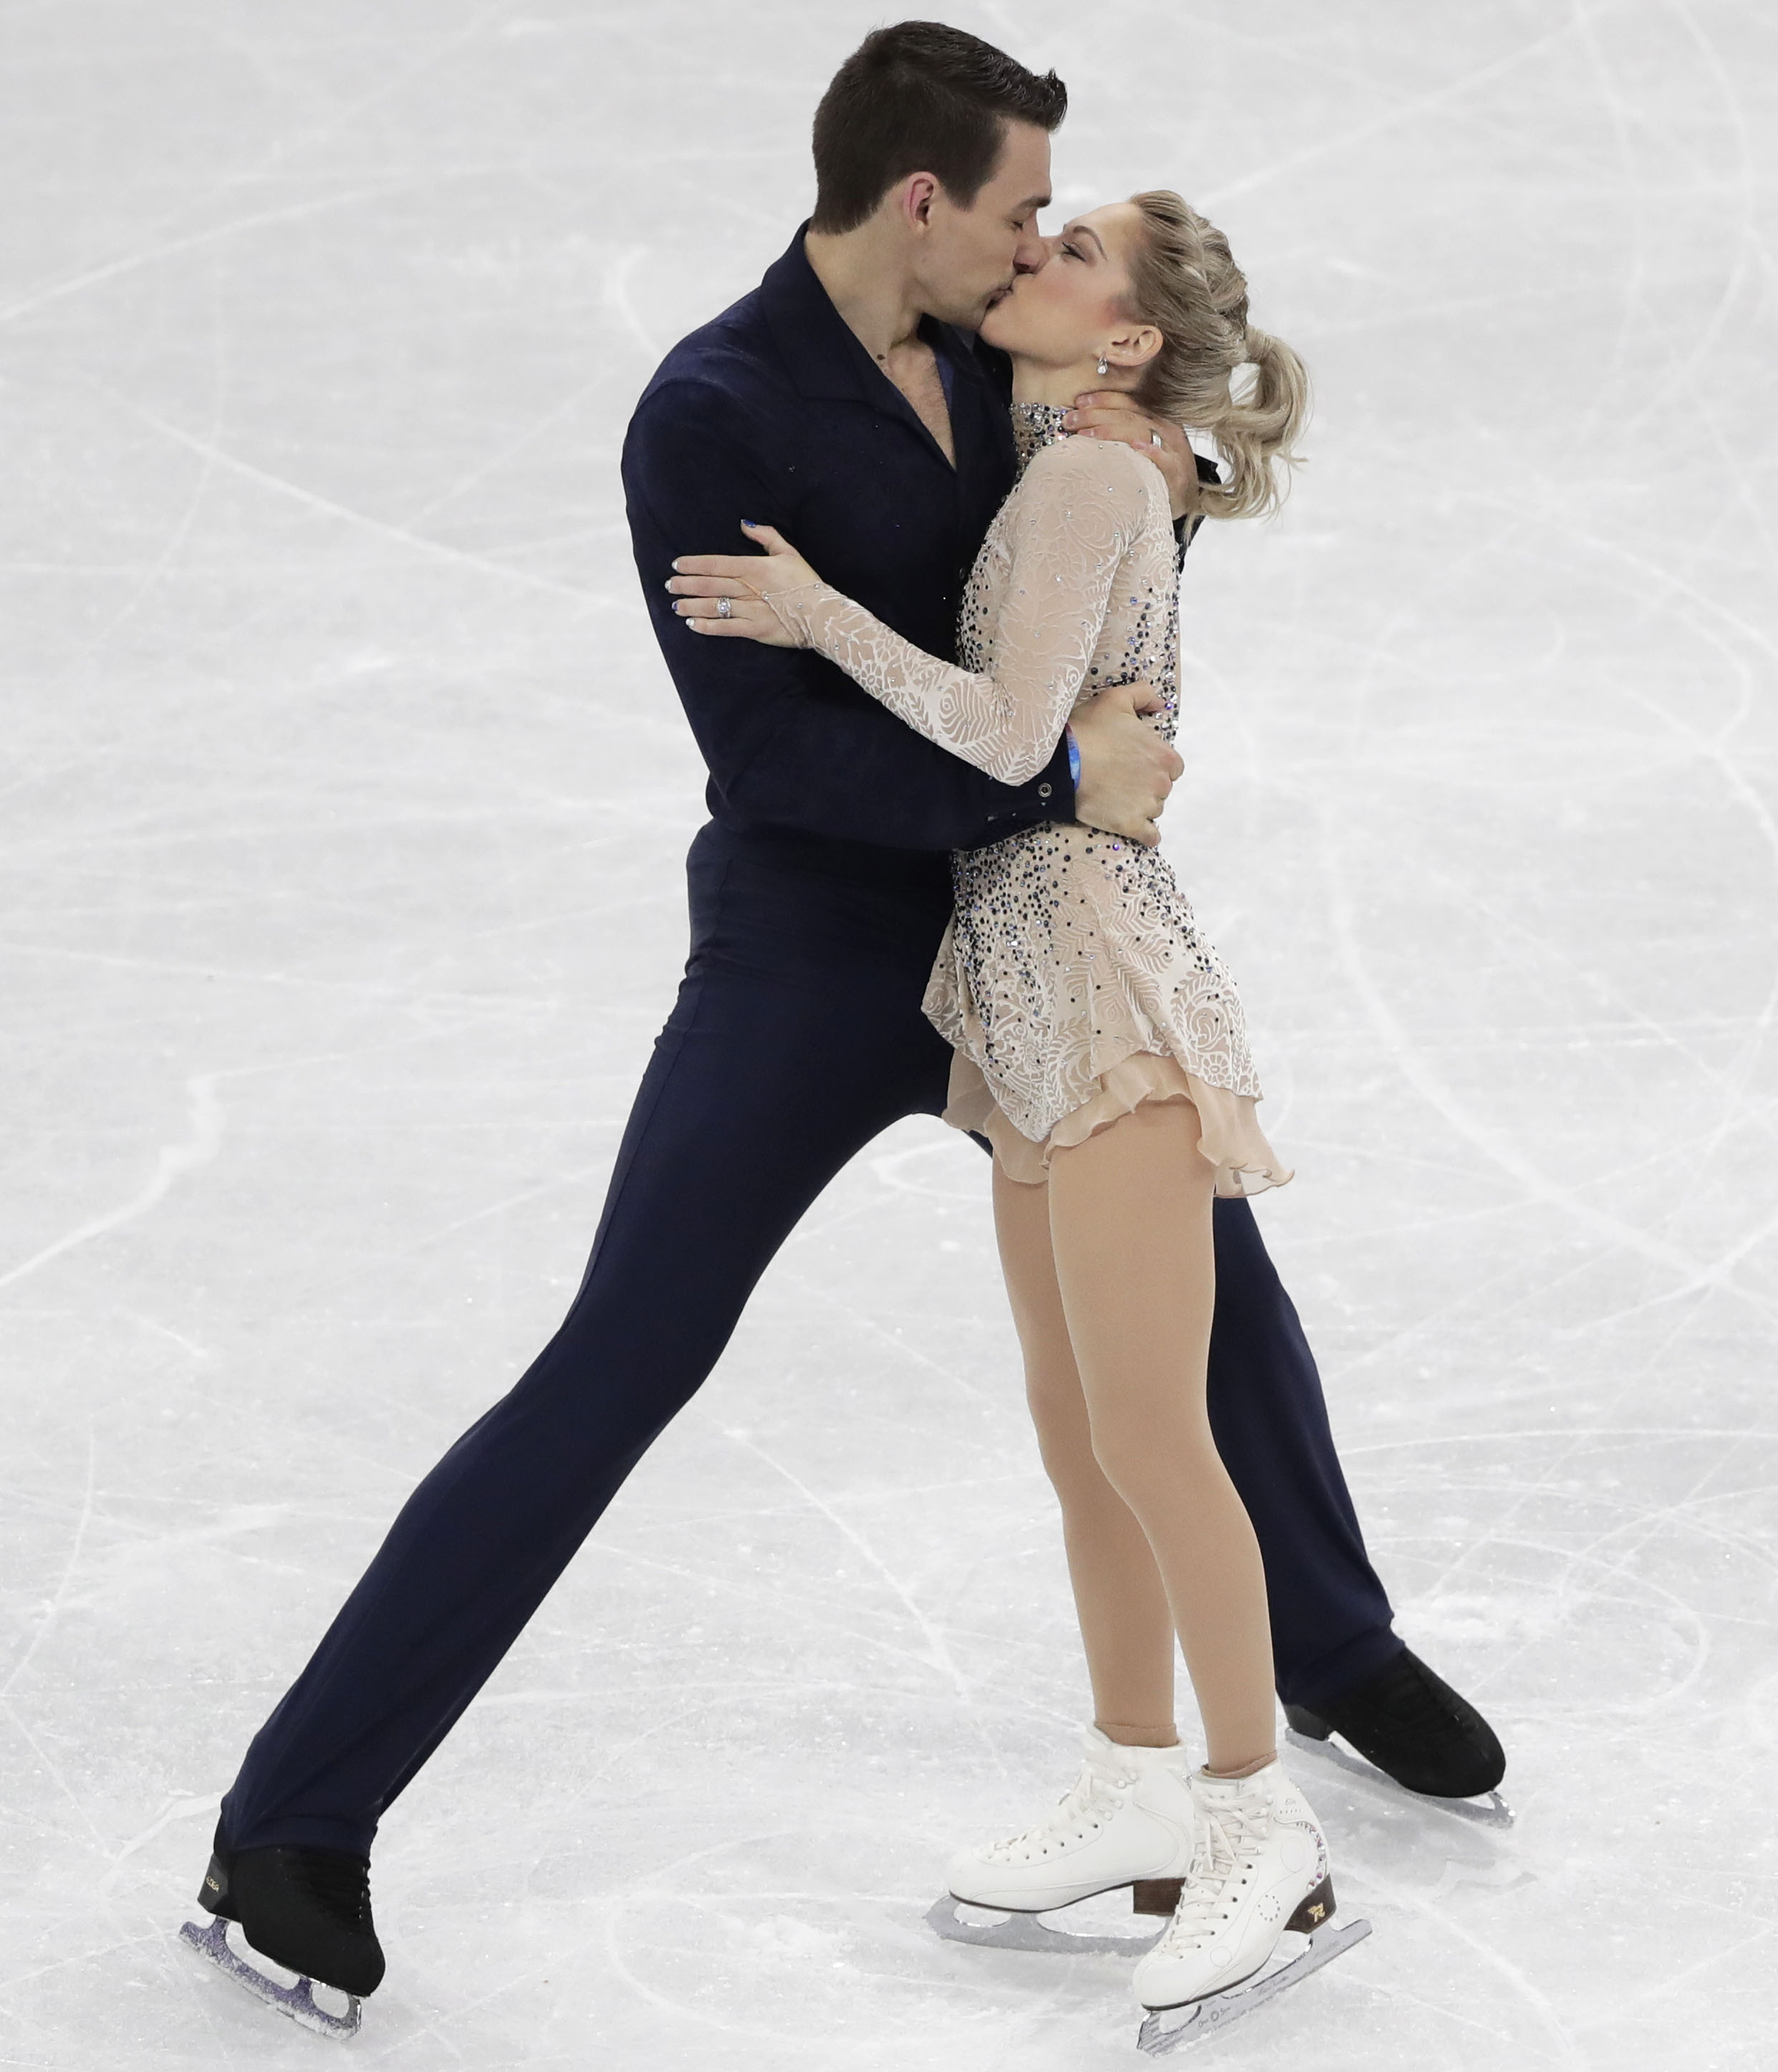 American skaters share kiss on Olympic ice